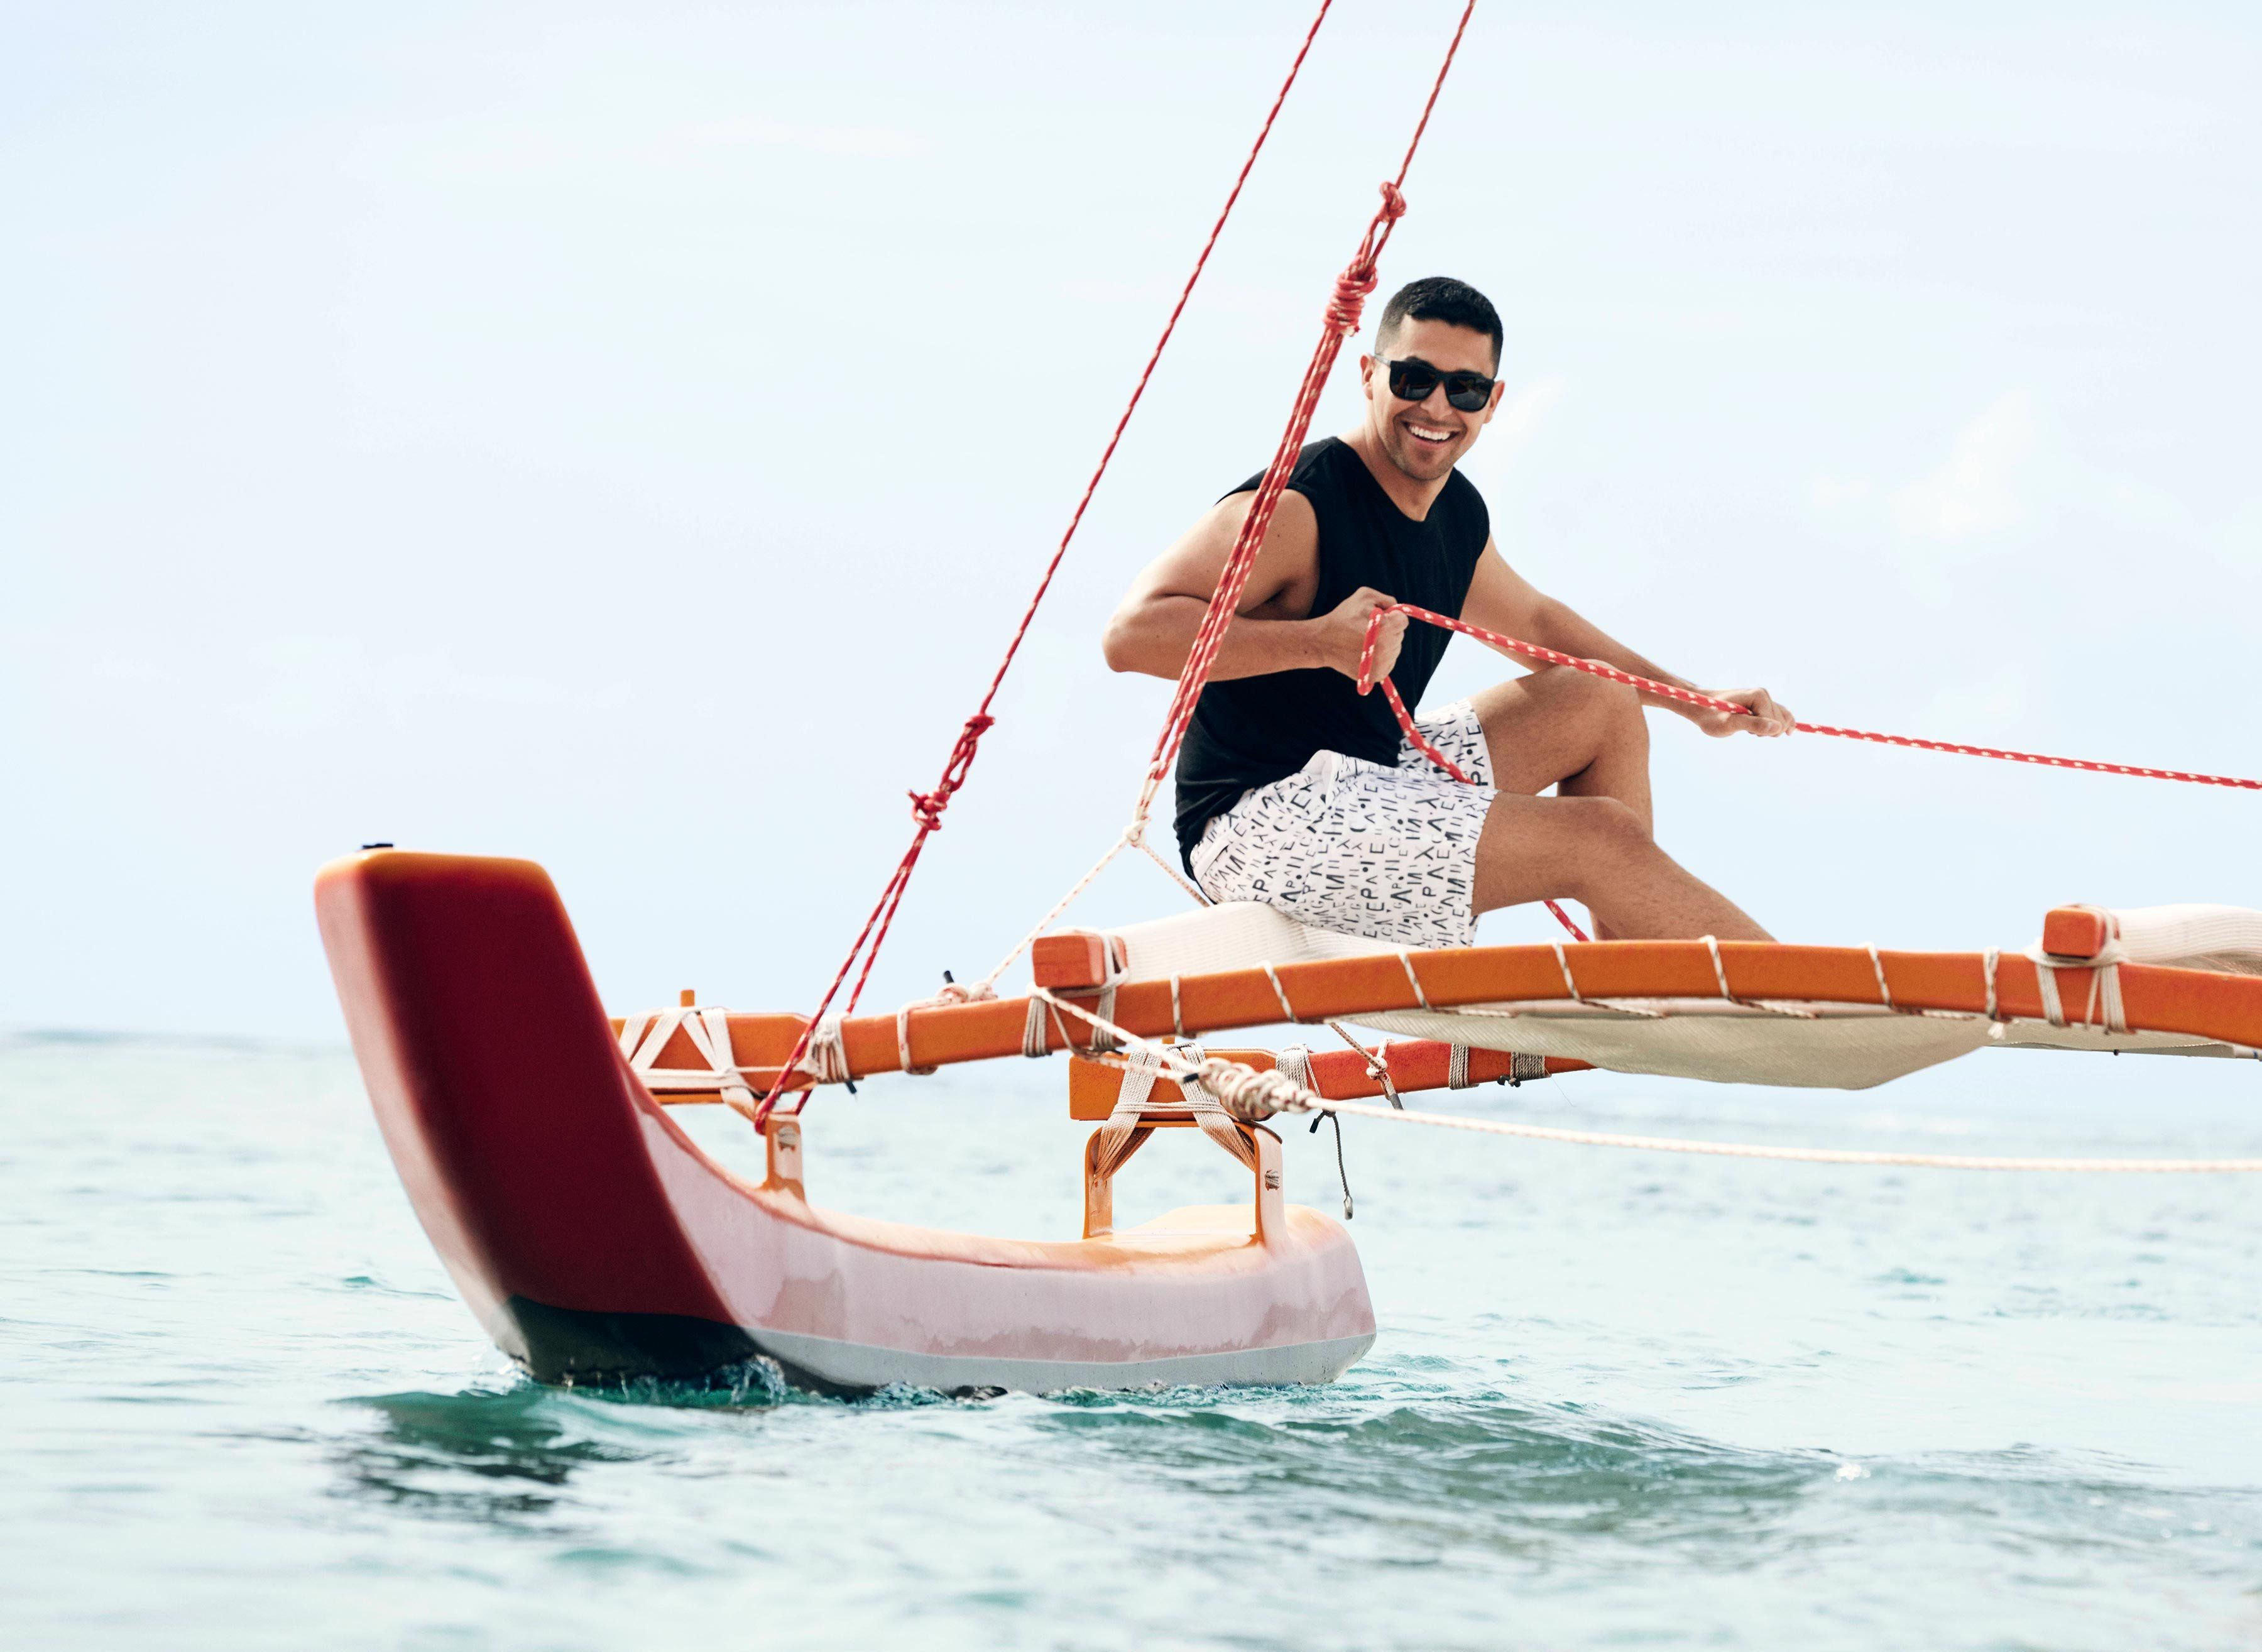 Wilmer Valderrama sailing on the ocean in a black tank top and white swim trunks